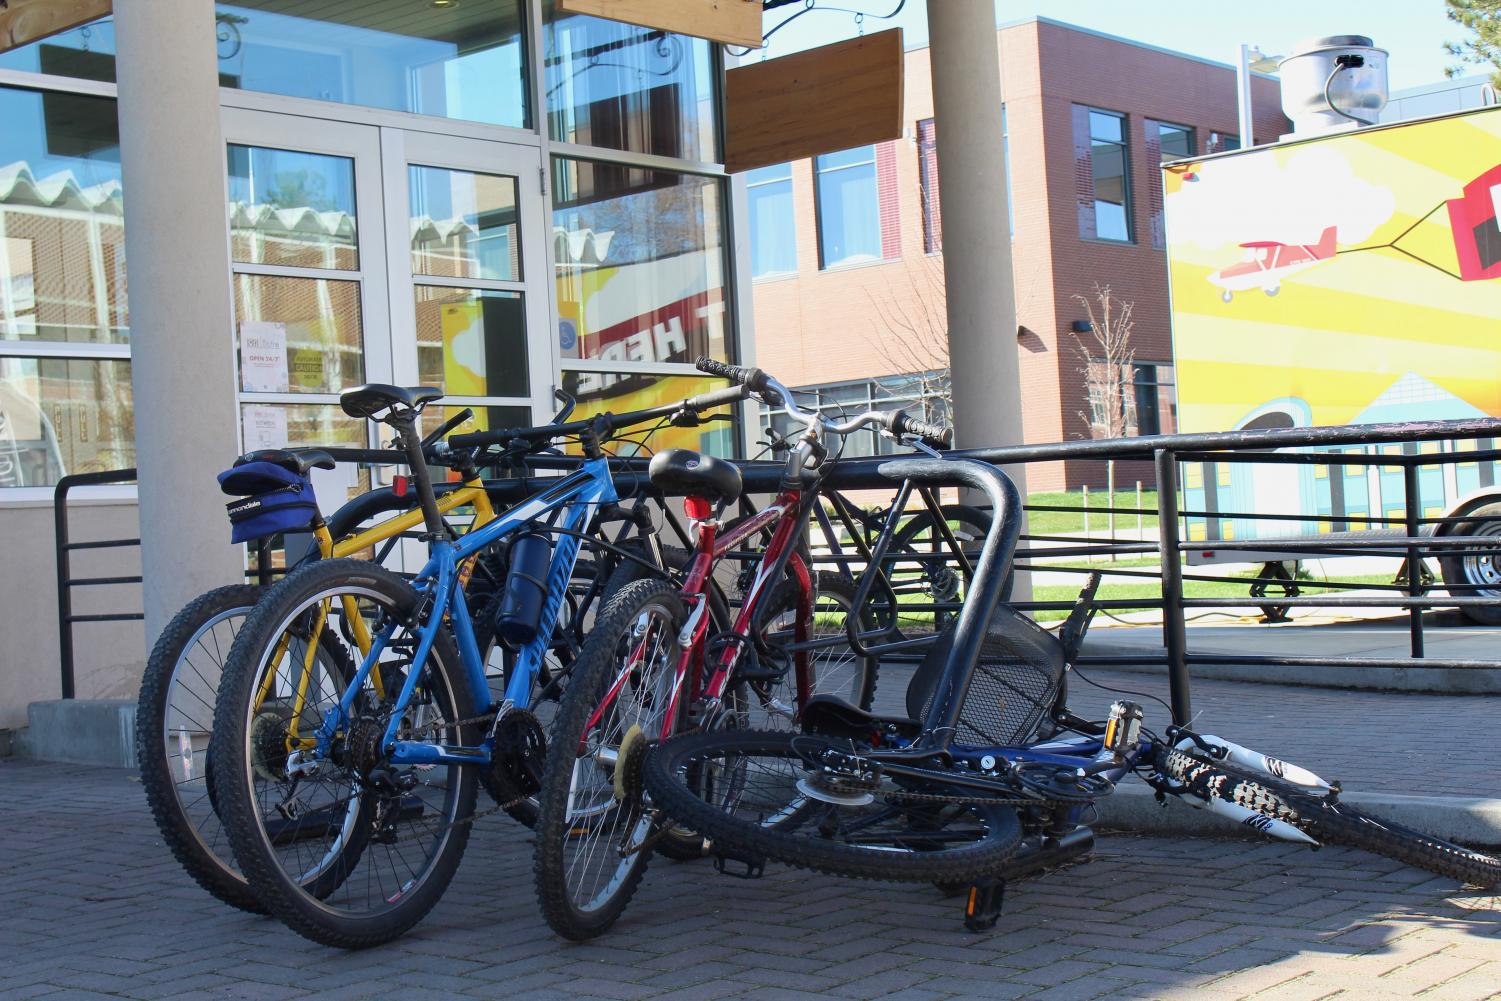 Bike racks can be found full around campus. Pictured above are multiple bikes outside of the 1891 Bistro. Students can register their bikes with CWU police to help track them down if they are ever stolen.